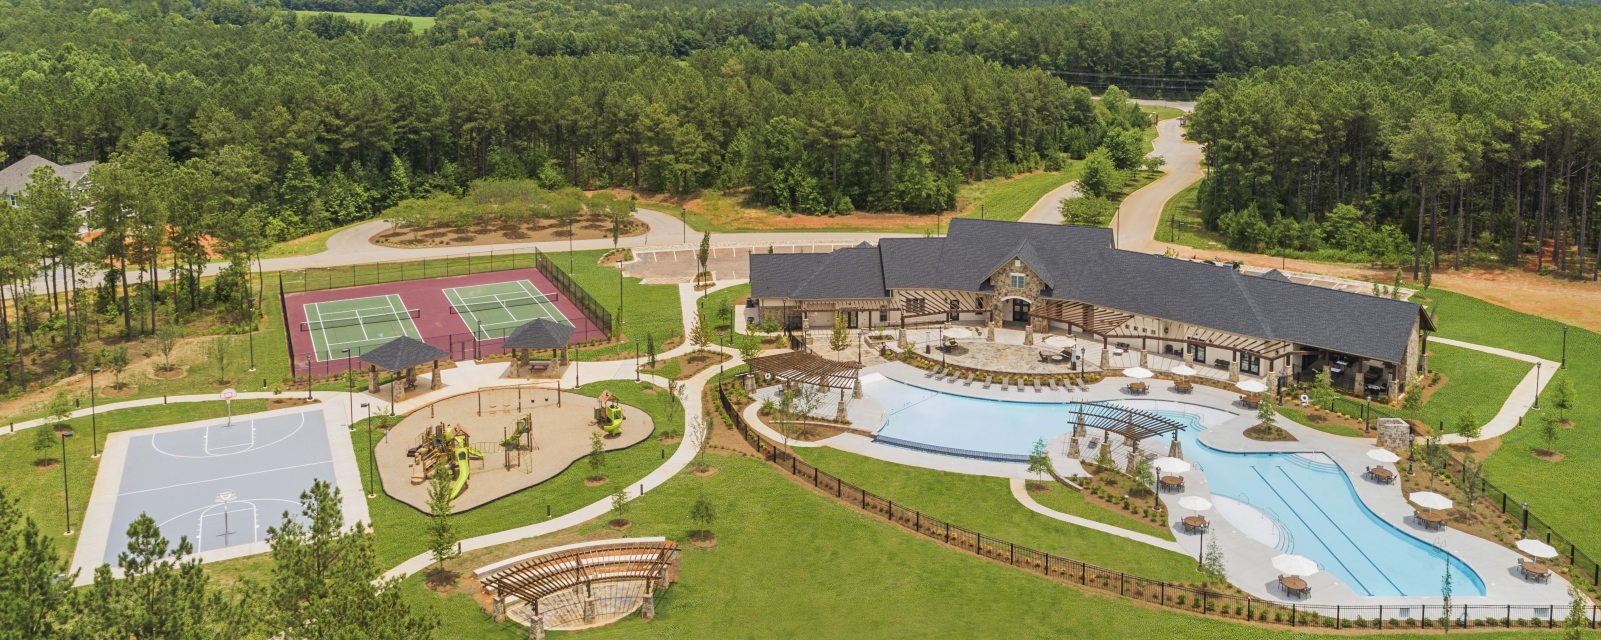 Classica Homes | Custom Home Builder in Charlotte NC - Classica Homes